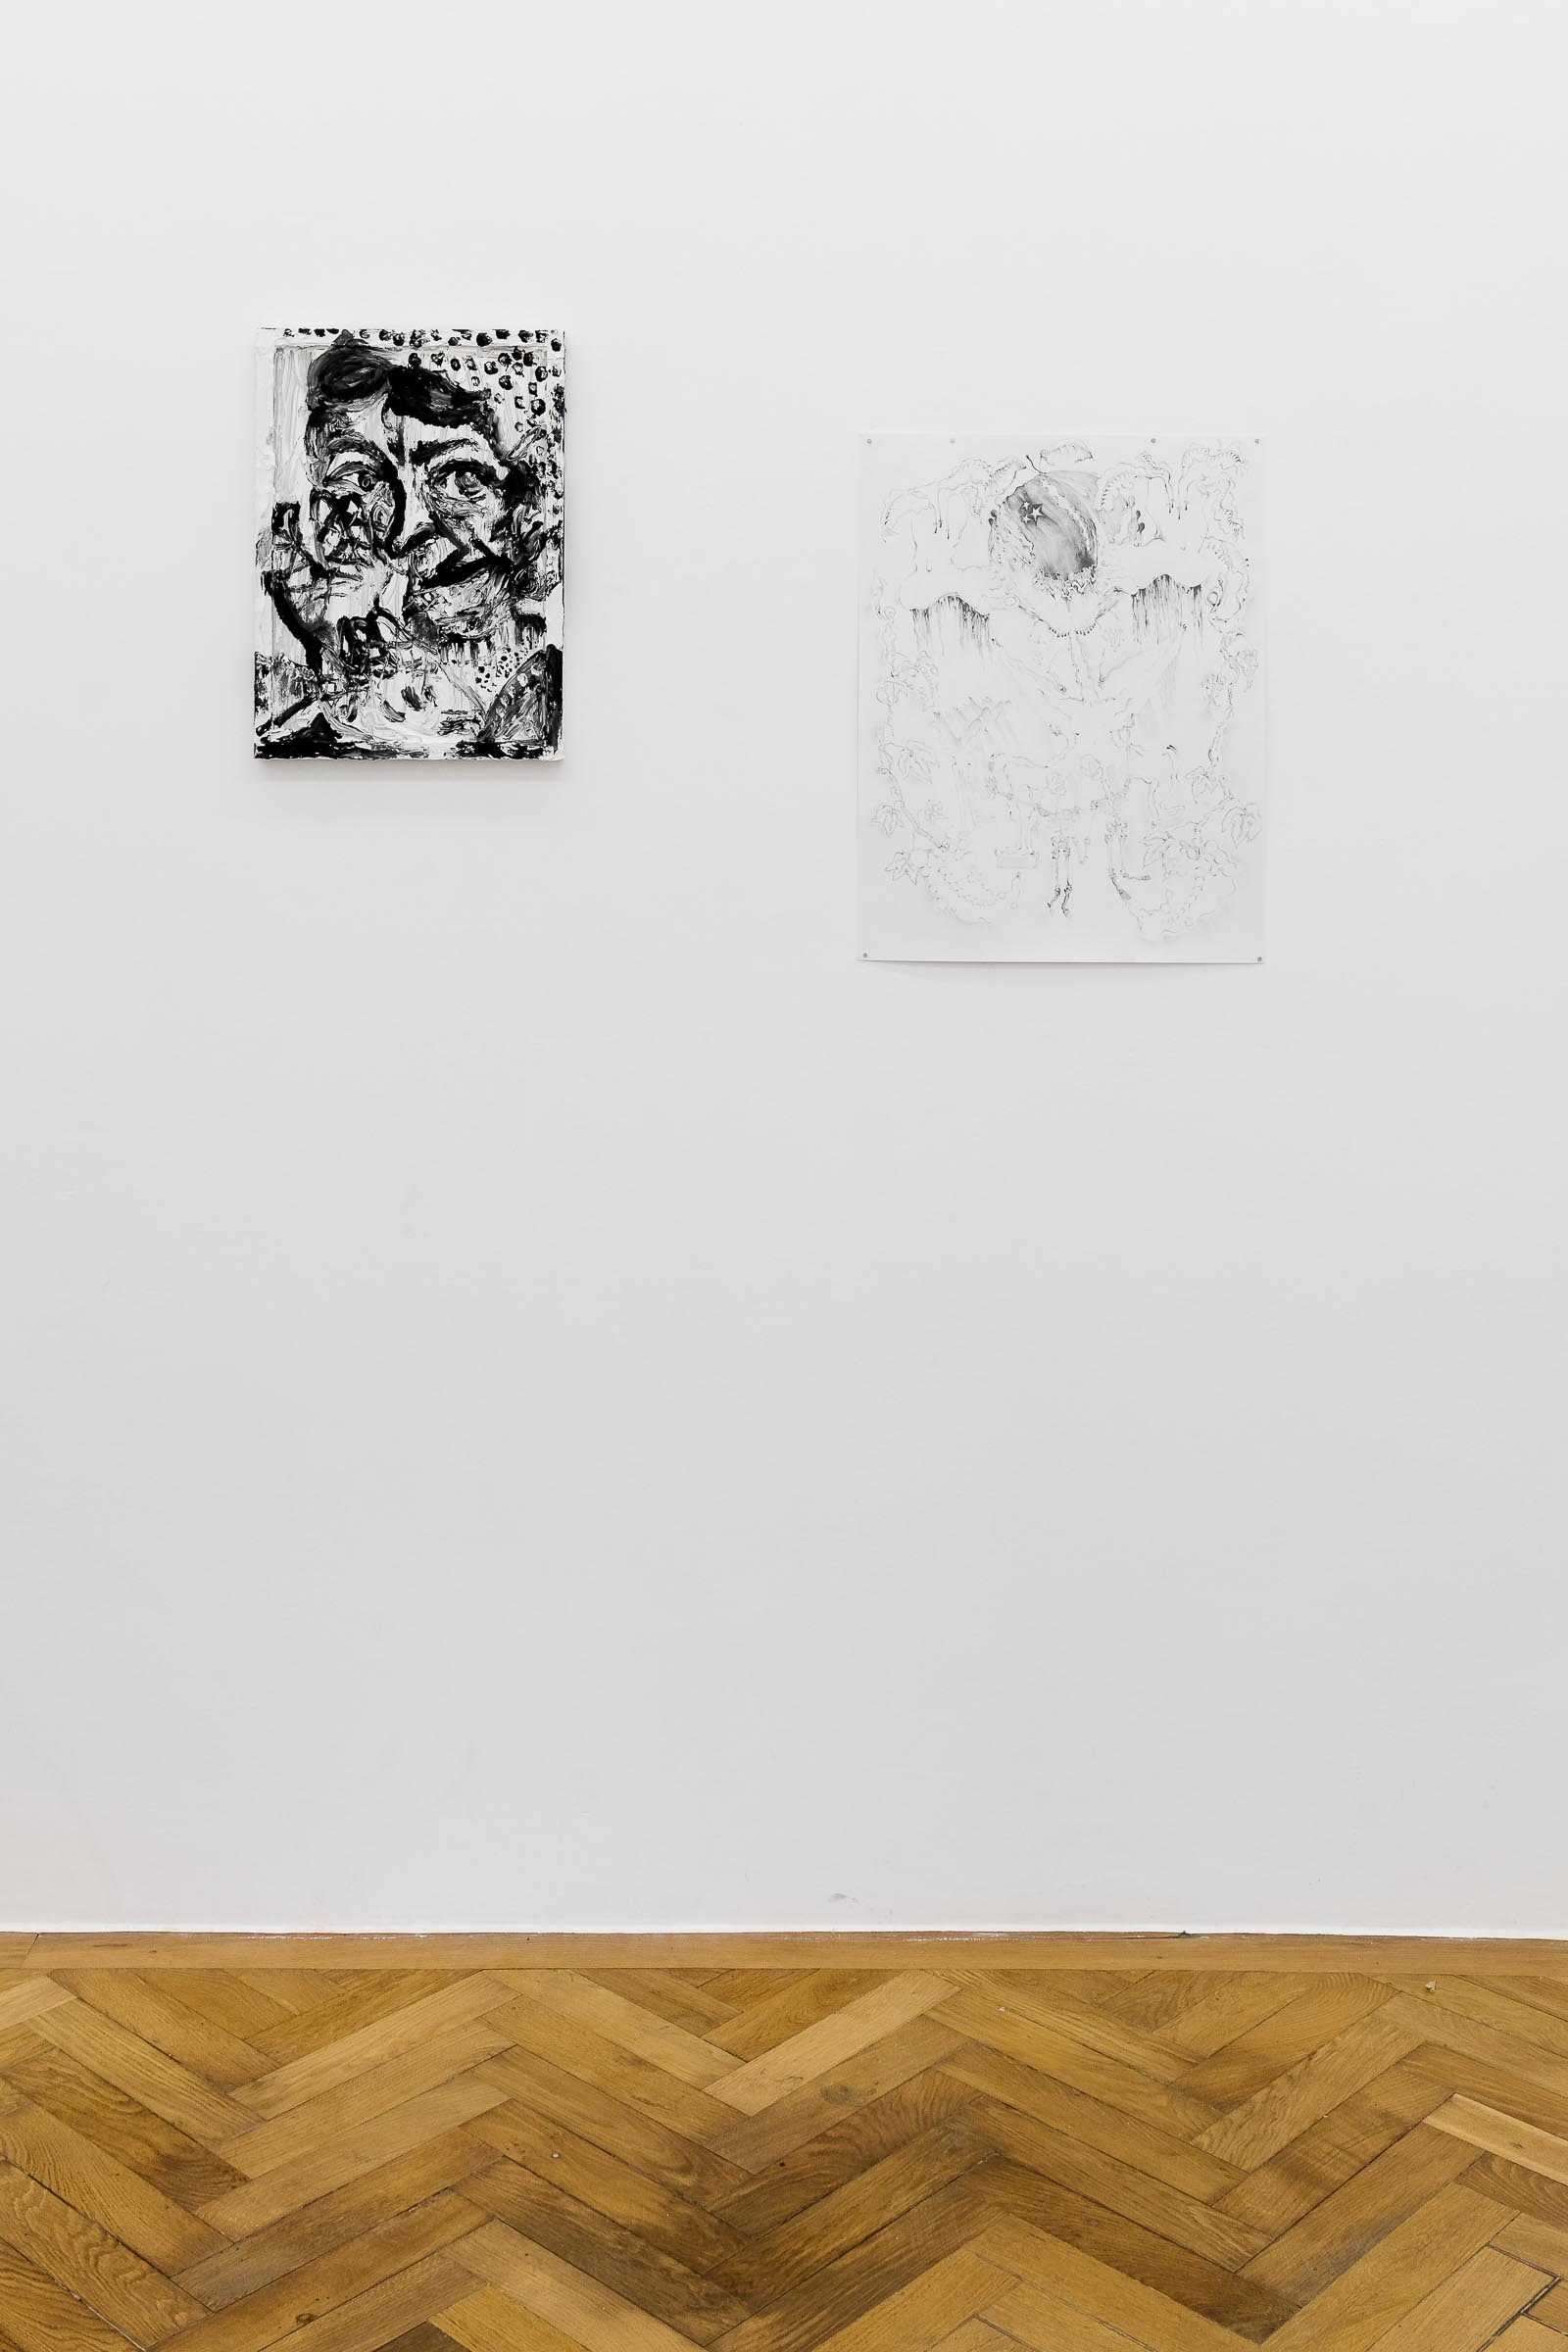 Exhibition View, TWO TO TANGO TWO, 2019